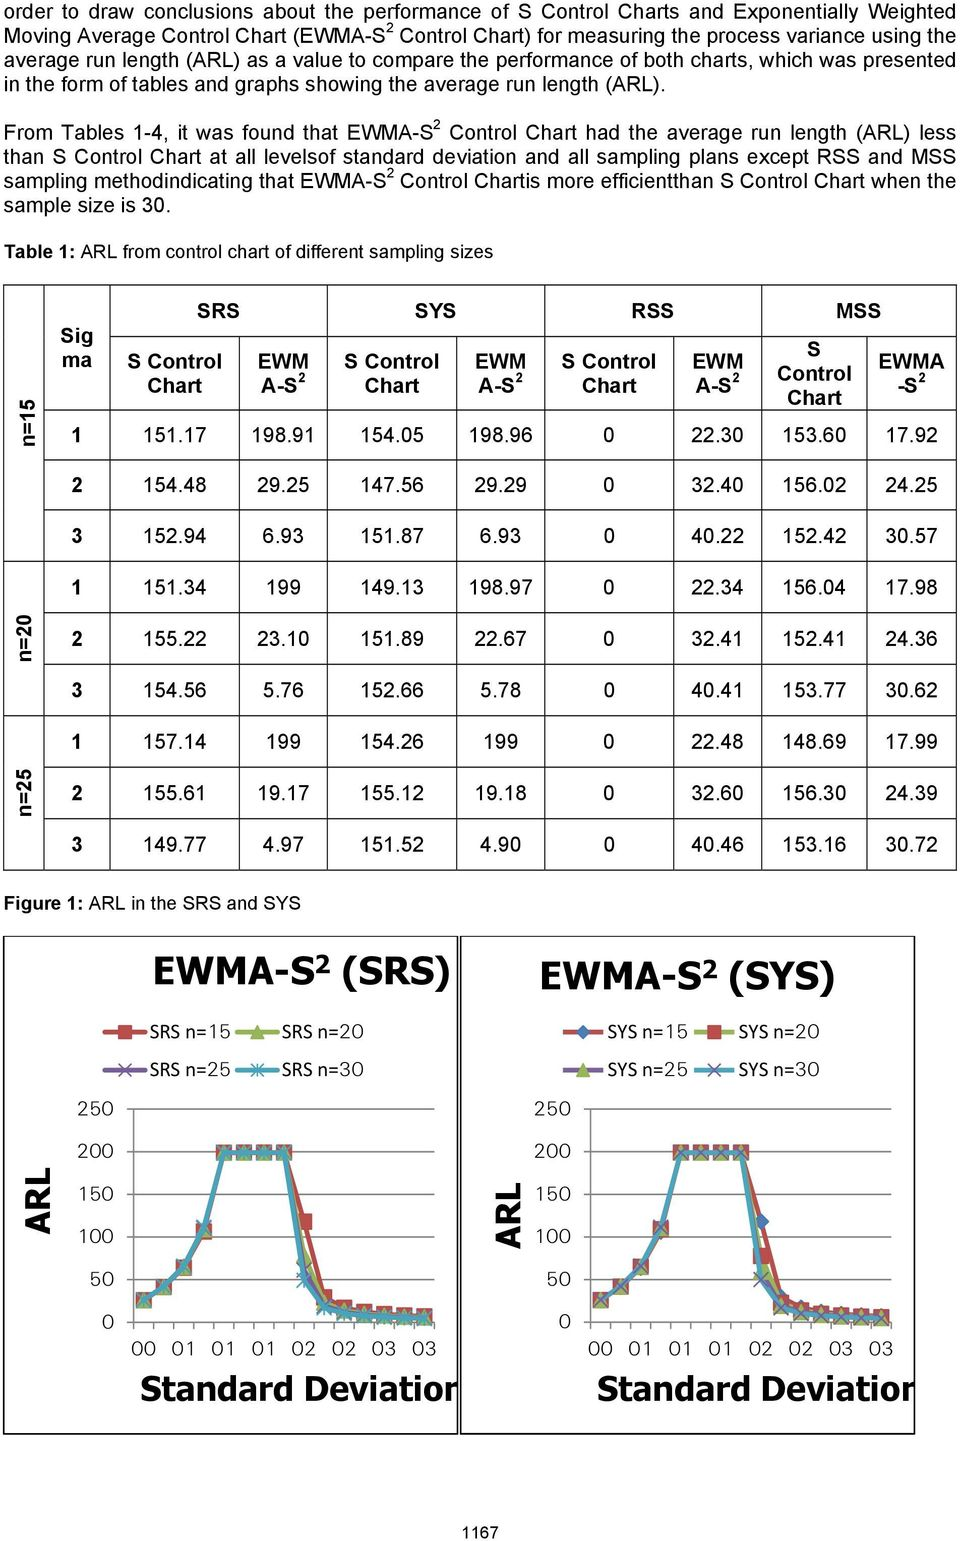 From Tables -4, it was foud that EWMA-S Cotrol Chart had the average ru legth () less tha S Cotrol Chart at all levelsof stadard deviatio ad all samplig plas except RSS ad MSS samplig methodidicatig